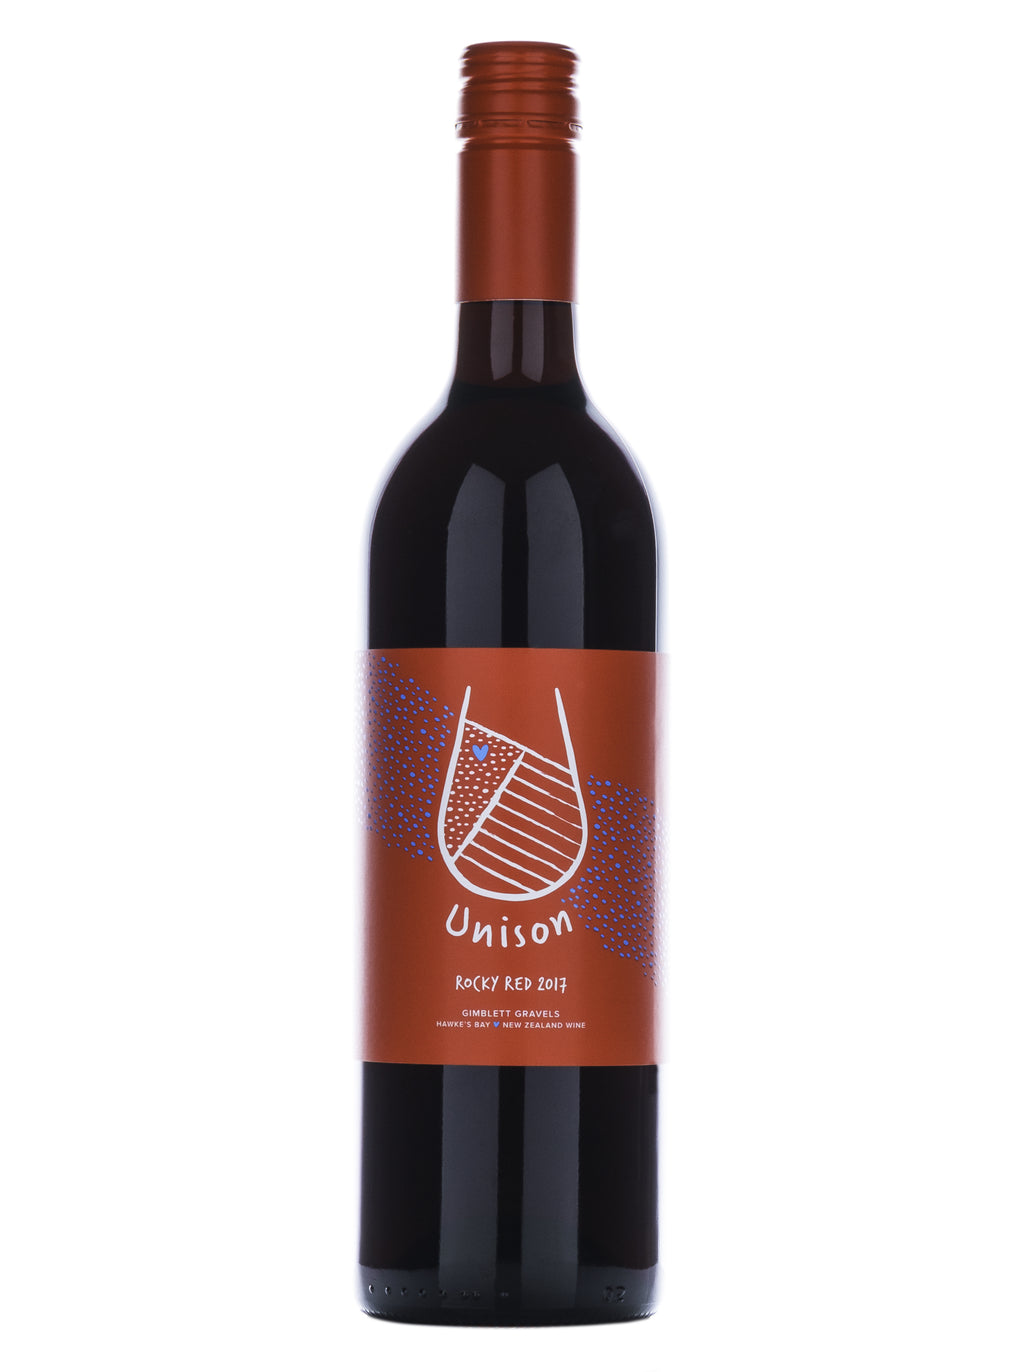 Unison Rockey Point, Rocky Red Soft, Gimblett Gravels, Hawke's Bay, New Zealand Wine, New Zealand Winery, Red Wine, New Zealand Red Wine, New Zealand Wine Events, Auckland Wine Events, Winetopia, Wine Tree, Online Wine Shop, Cabernet Sauvignon